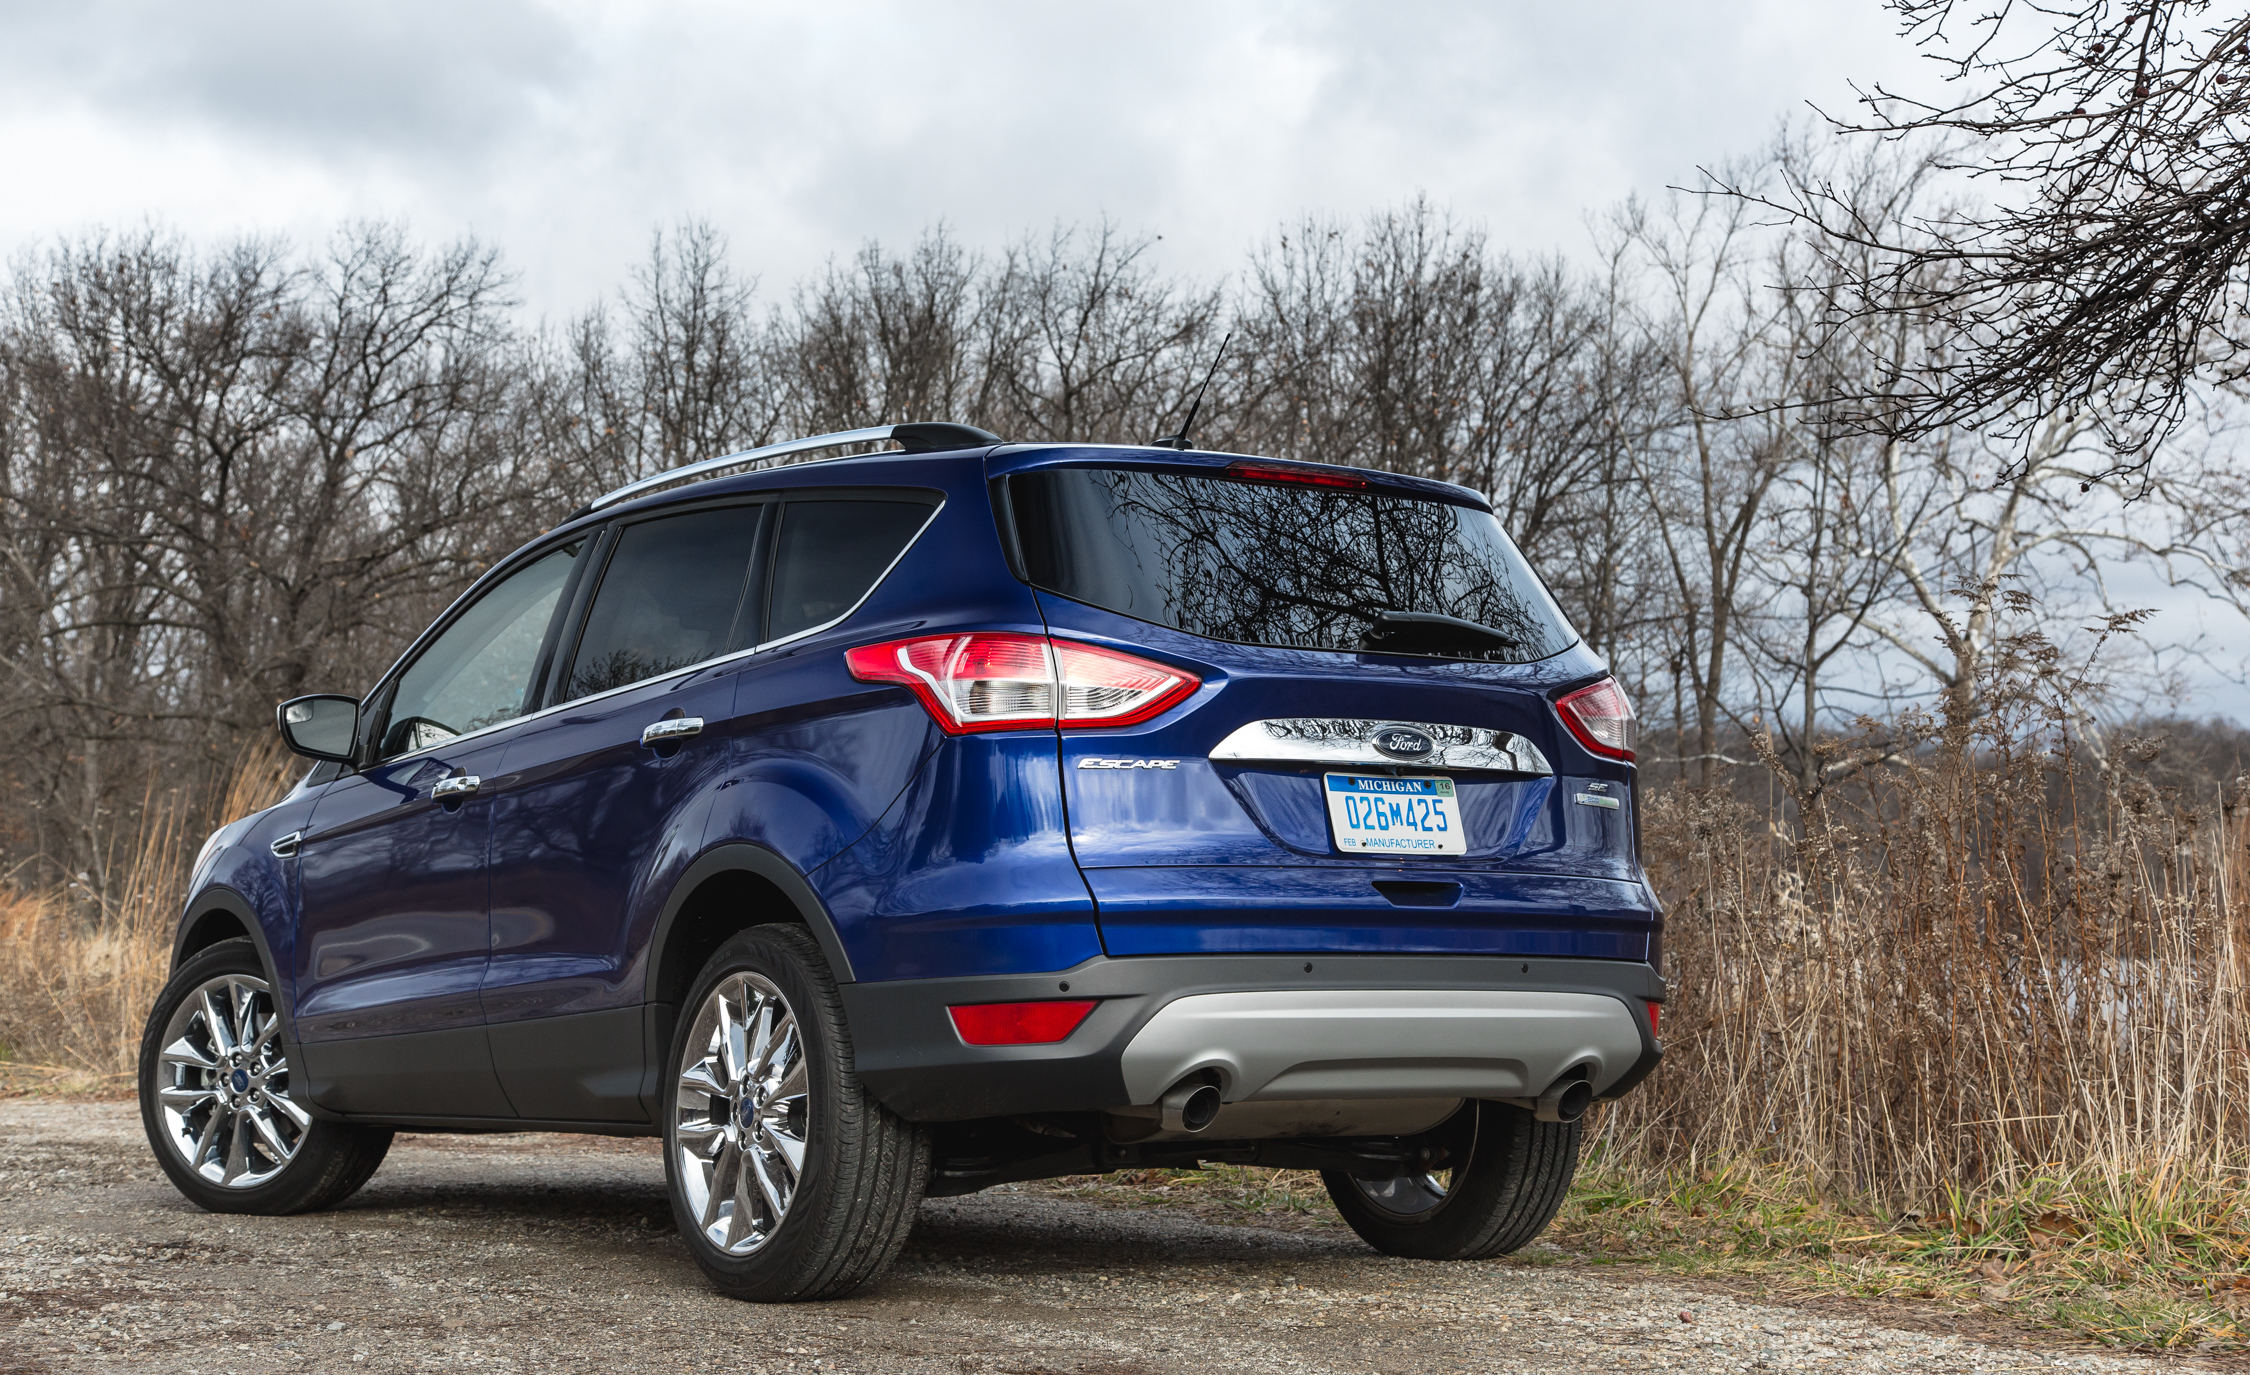 2016 Ford Escape Ecoboost SE Exterior Rear and Side